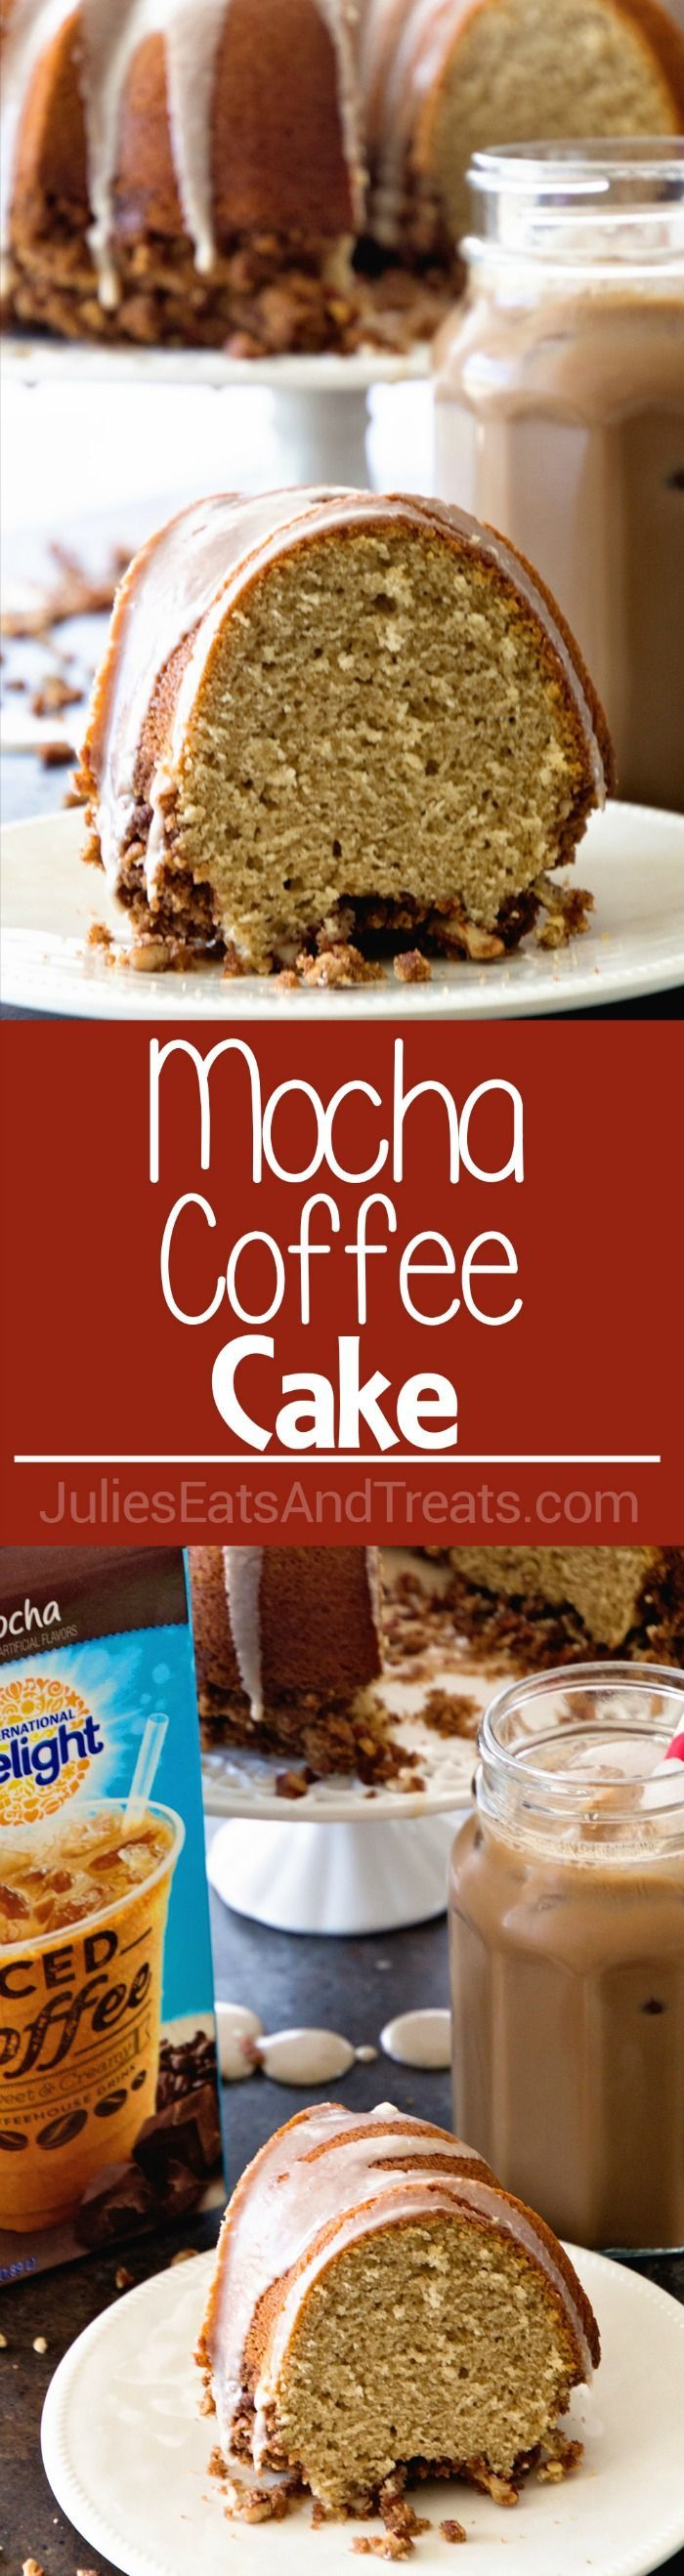 Iced coffee, Coffee cake and Mocha on Pinterest